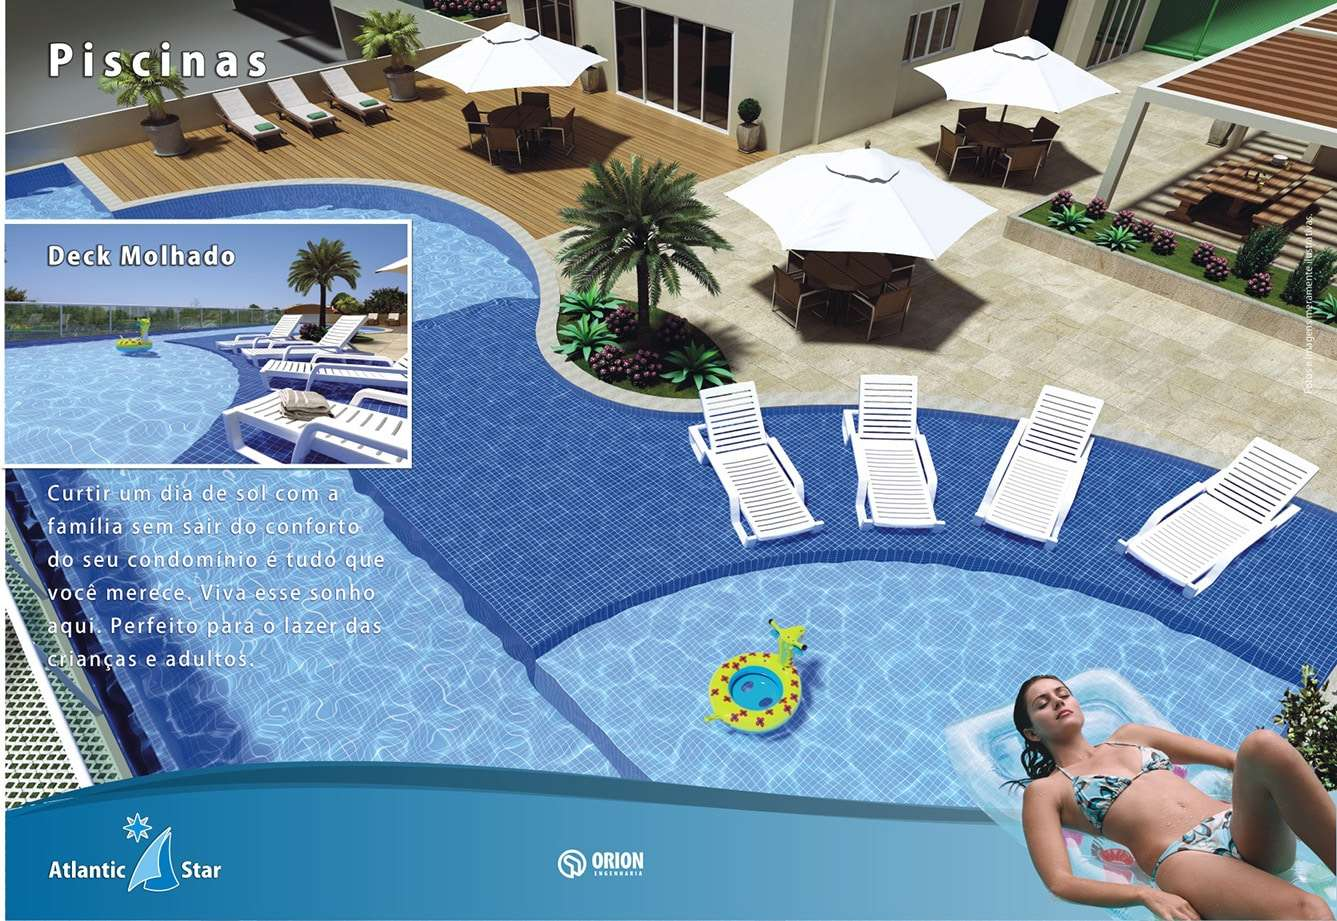 Residencial Atlantic Star   Revista Pagina20 21